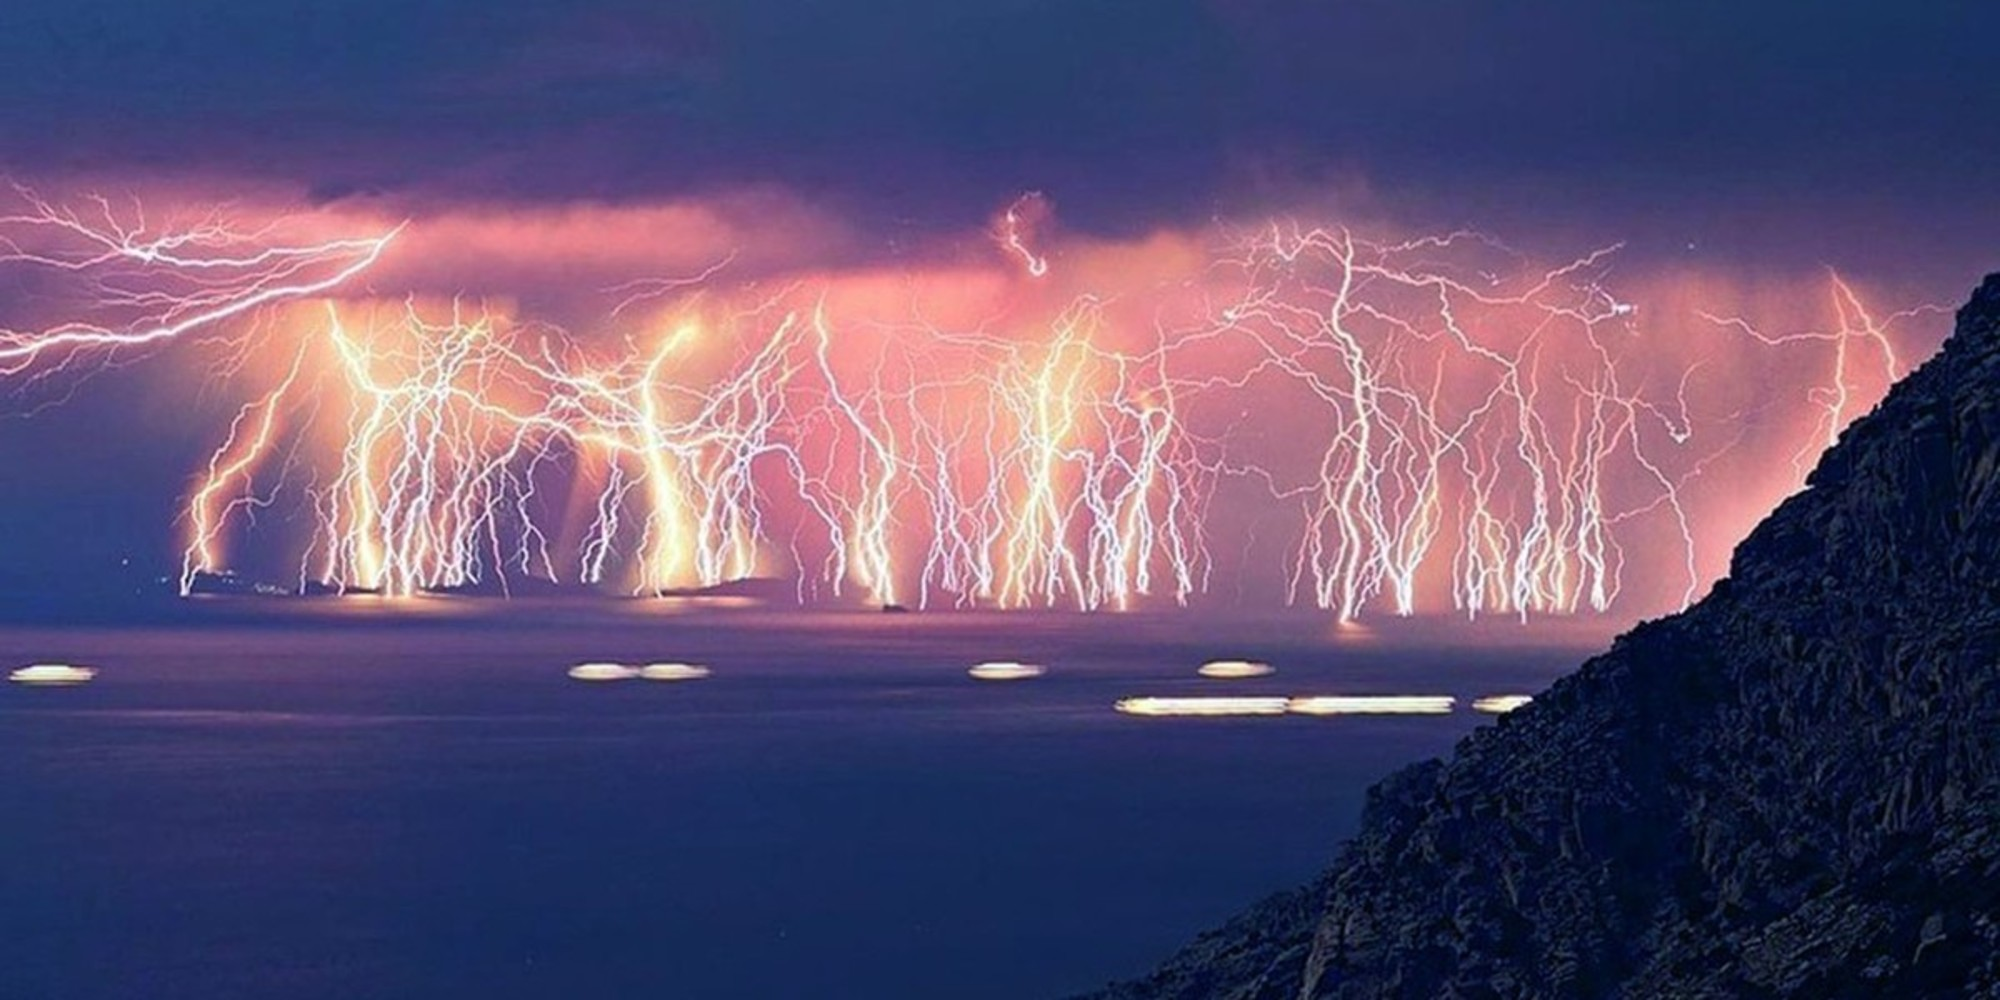 Canada Wallpaper Hd Iphone Lightning Catatumbo Wallpapers High Quality Download Free